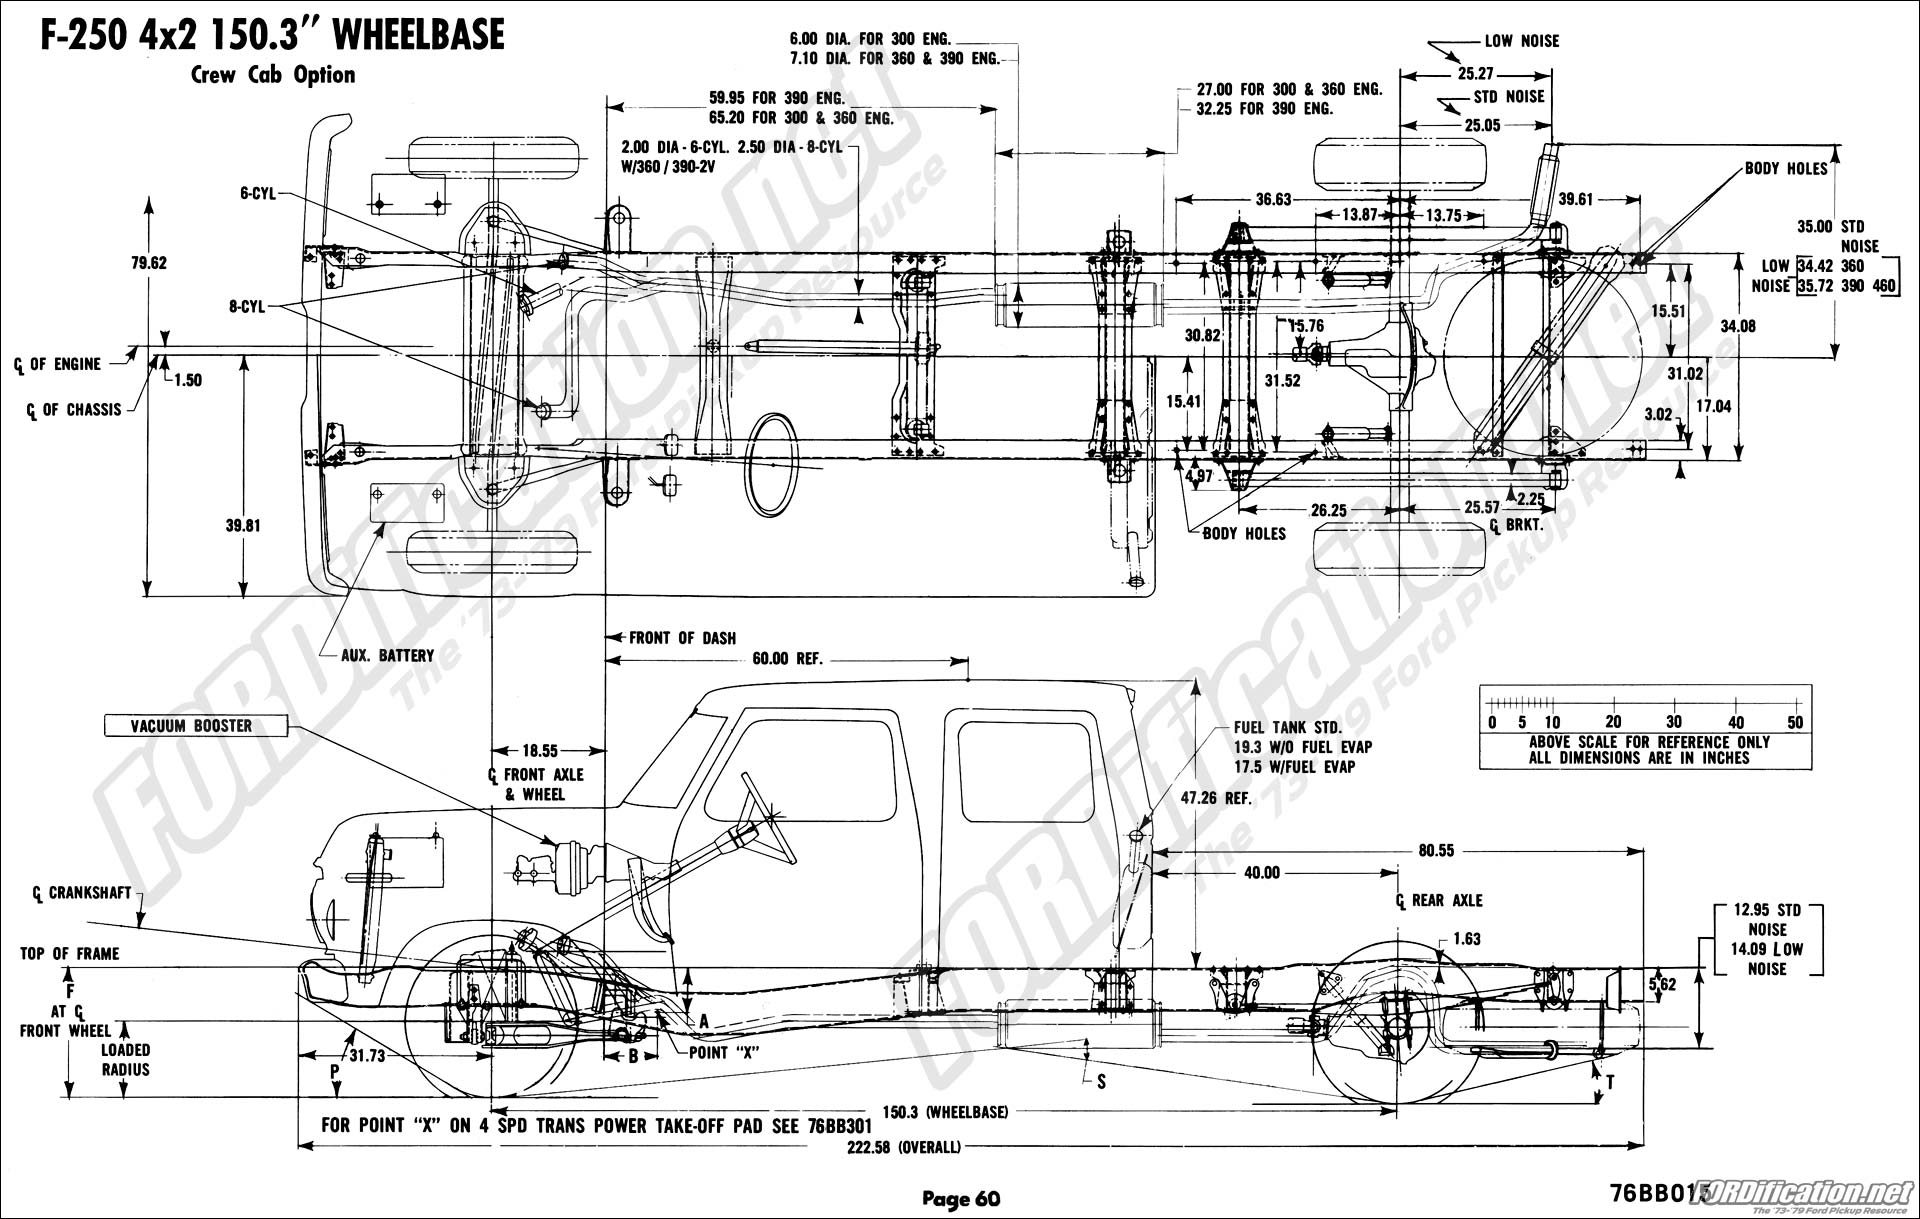 178176 Frames furthermore Bodybuilder76 besides 03f23sddimenmain also 1365351 Installing C6 Rebuilt Transmission Crossmember Problems likewise 2328e Find Fuse Box Diagram 2003 Ford F 150. on 2004 ford f150 4x4 supercab